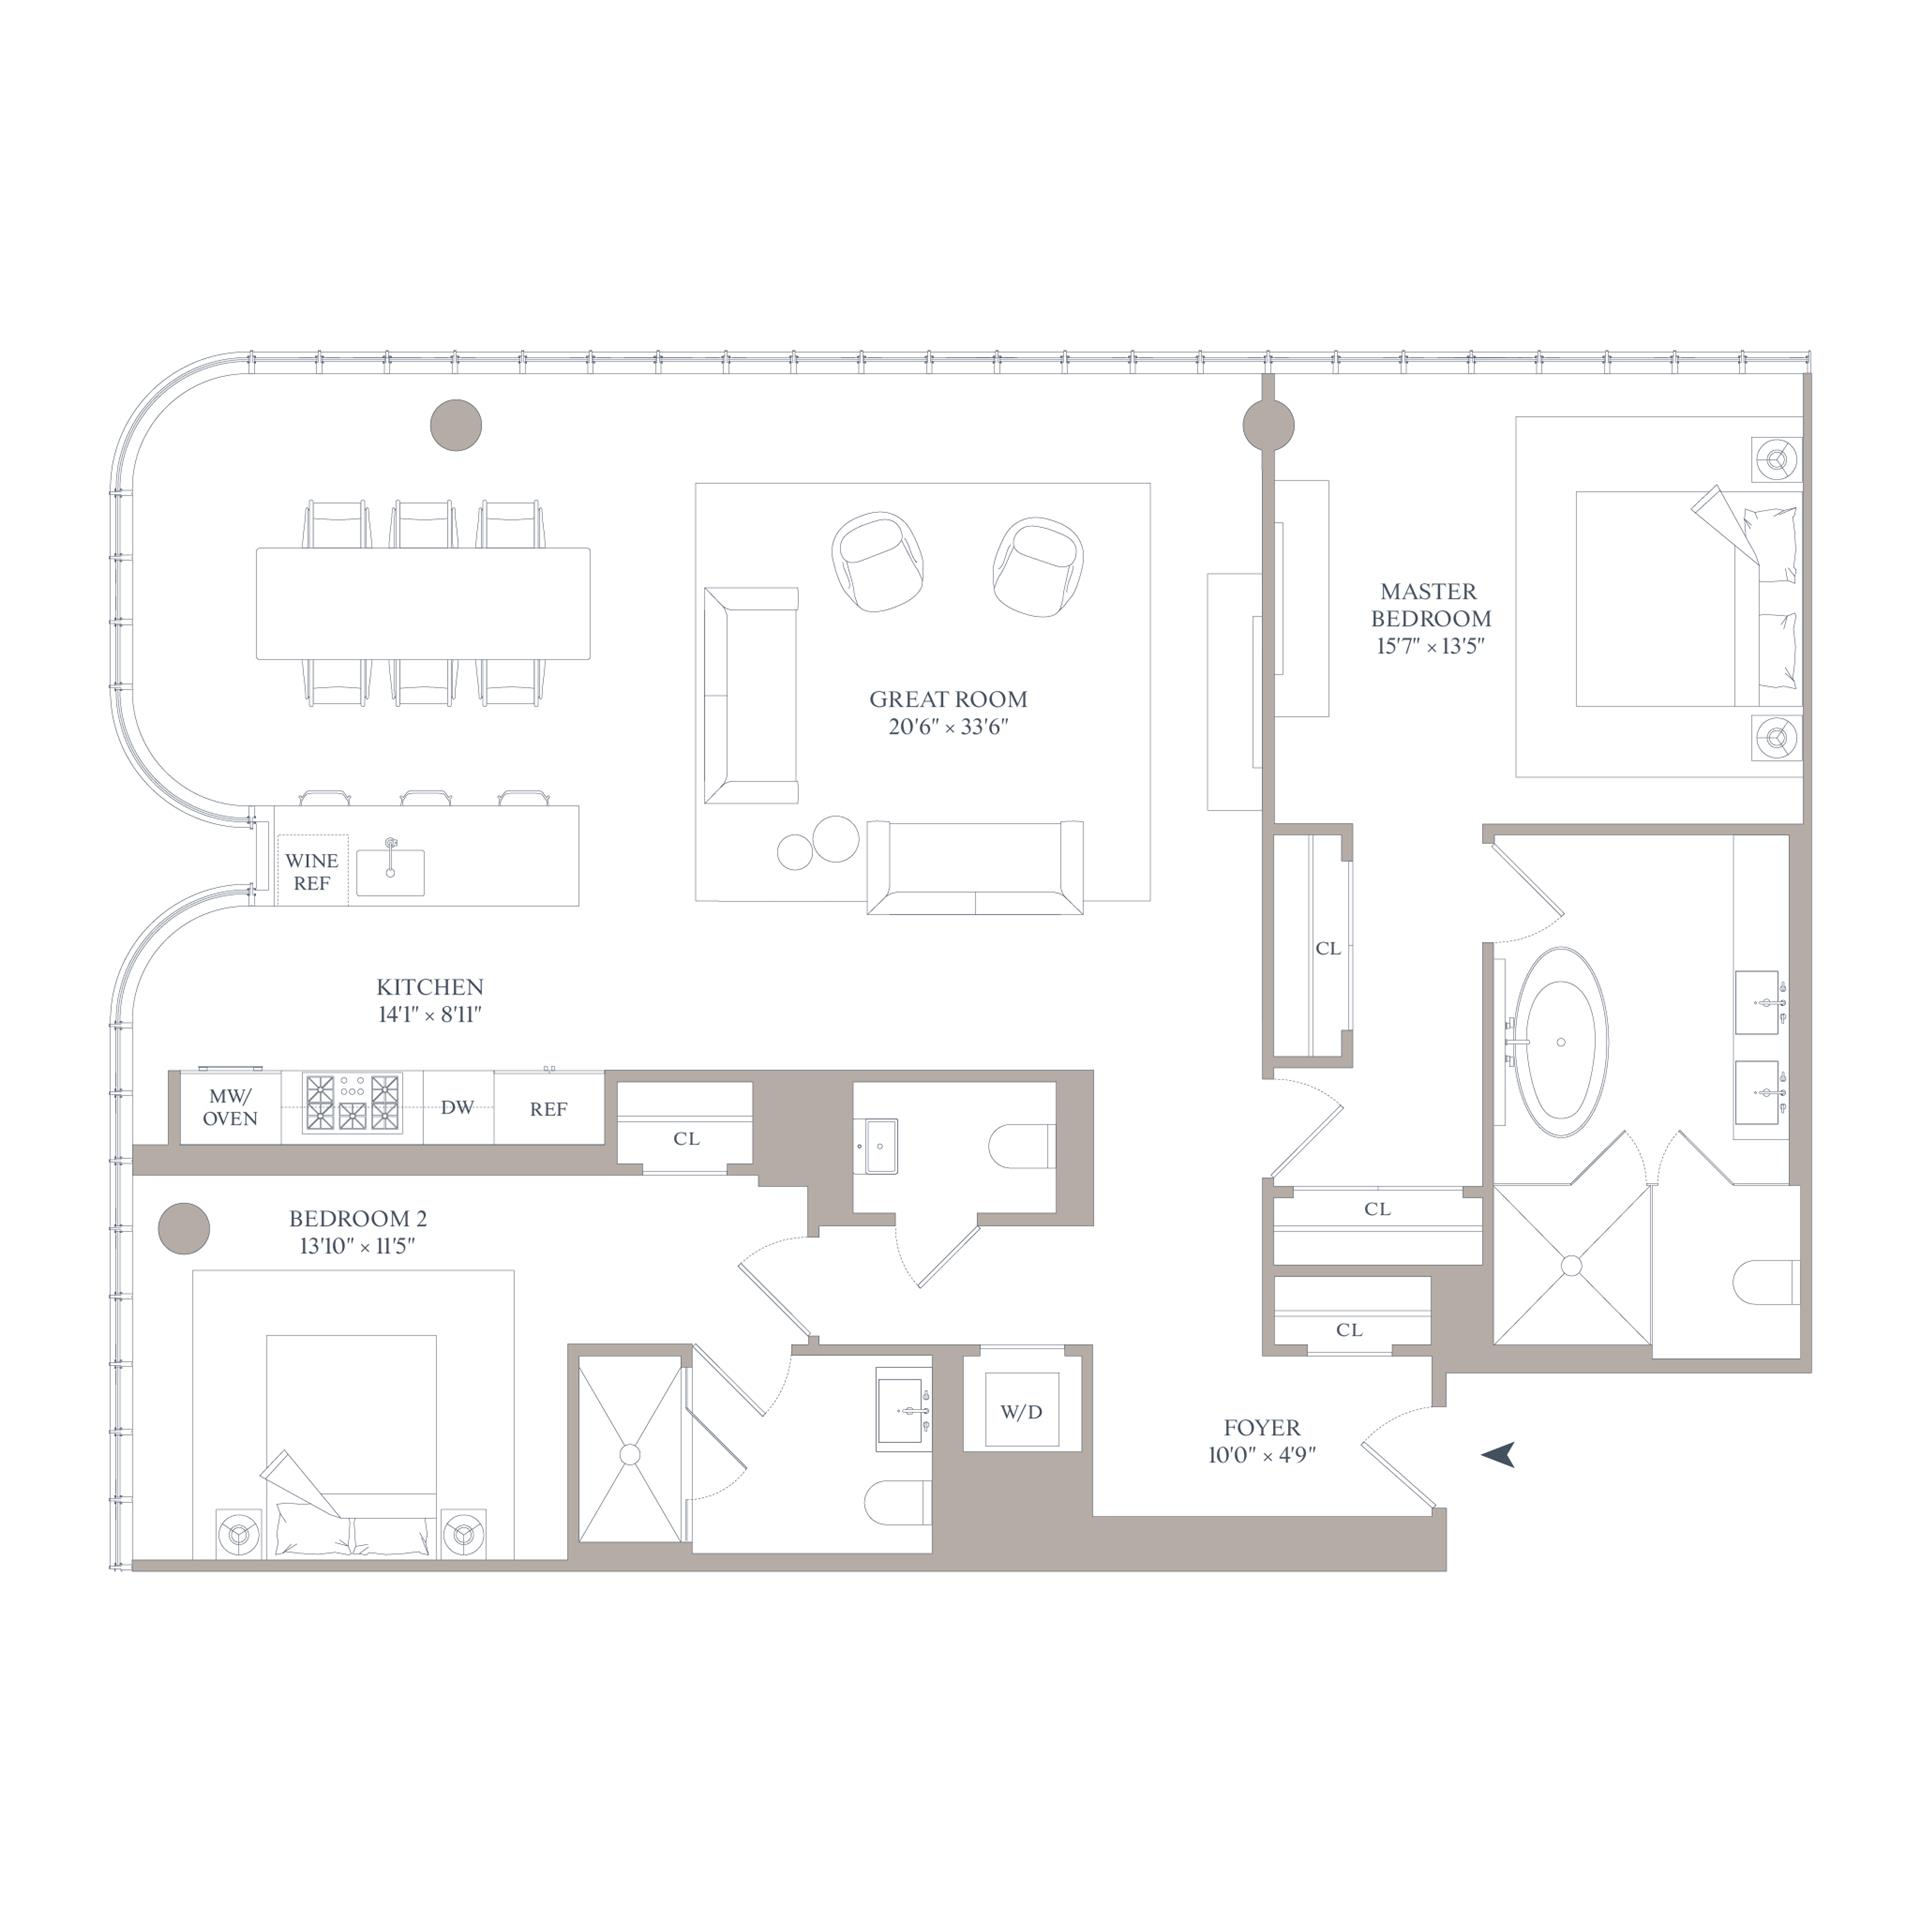 Floor plan of 565 Broome St, N7C - SoHo - Nolita, New York